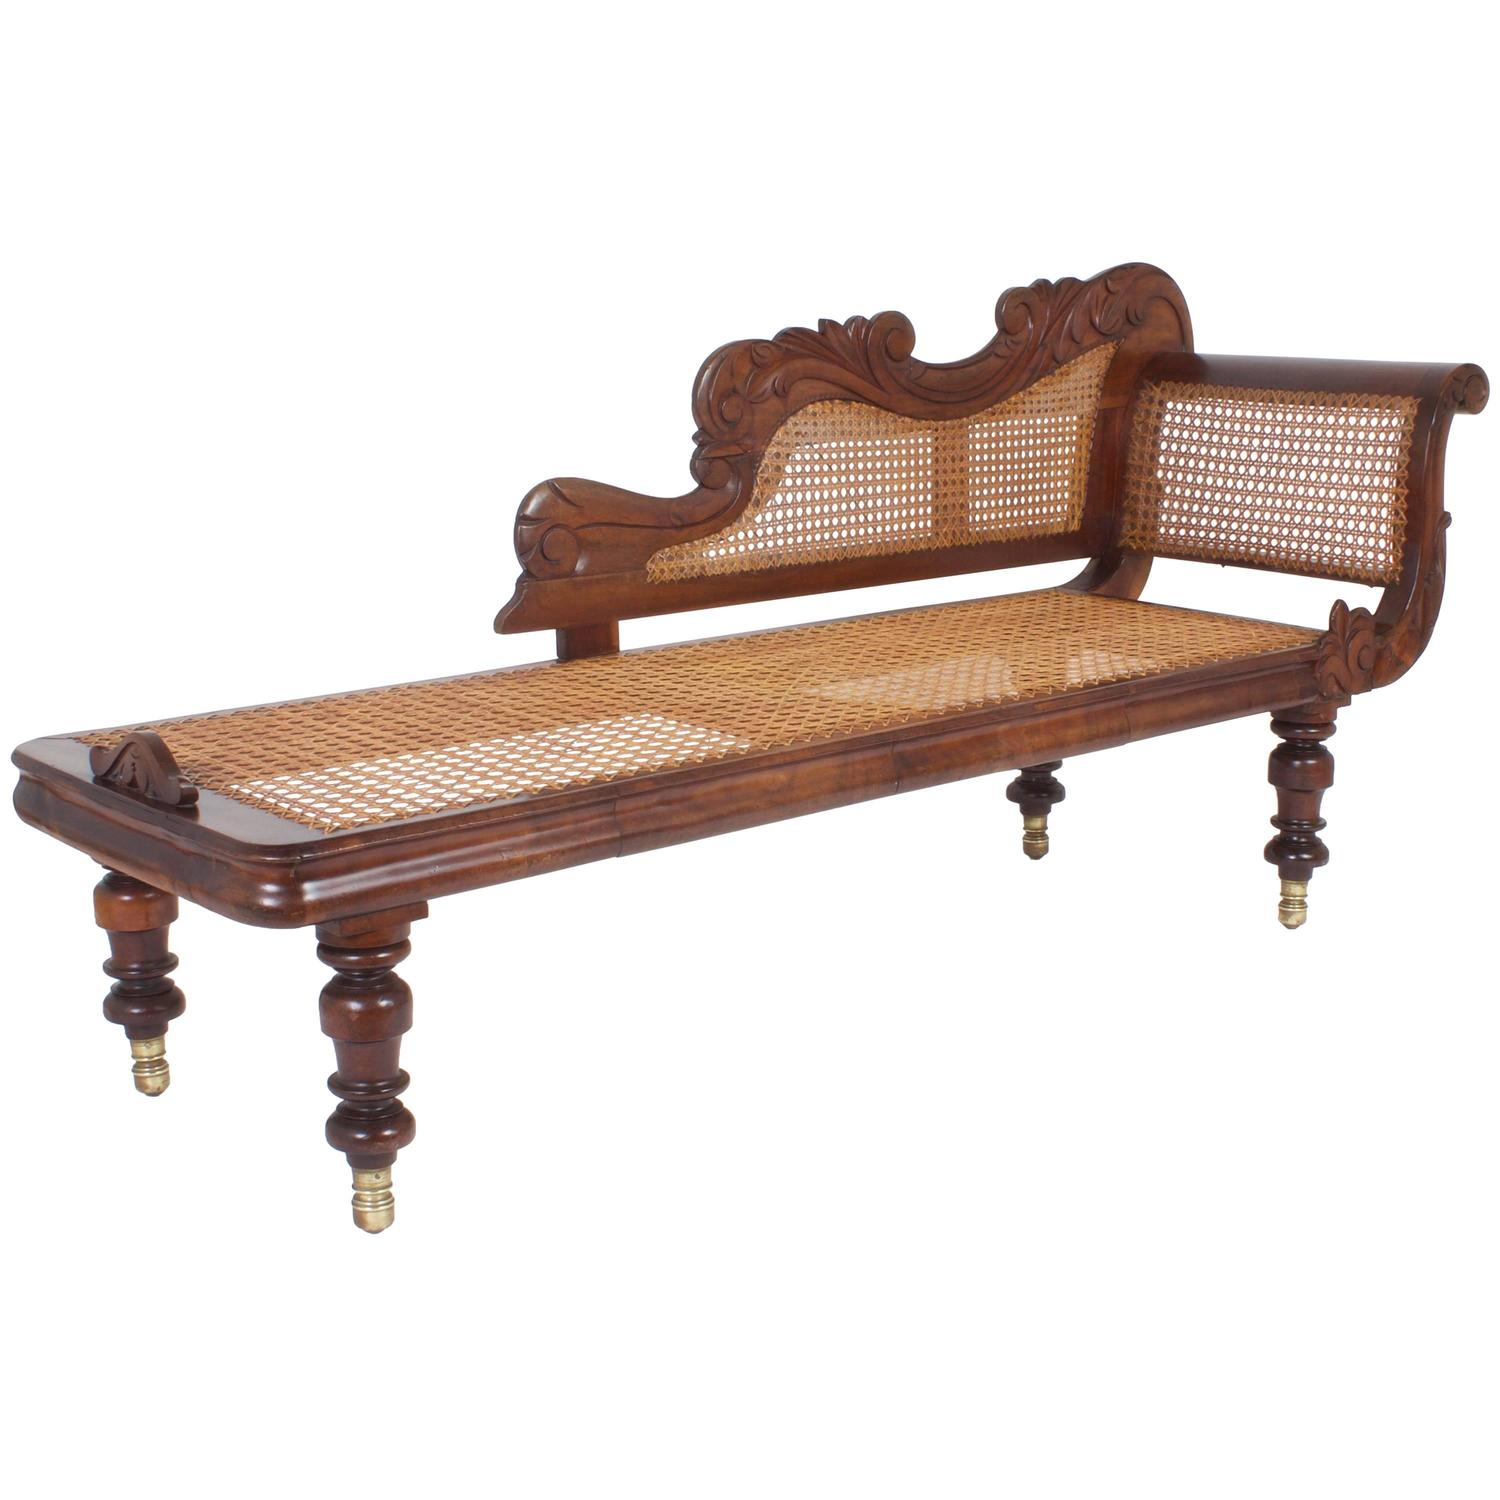 British colonial mahogany antique chaise longue at 1stdibs for Antique chaise lounge prices